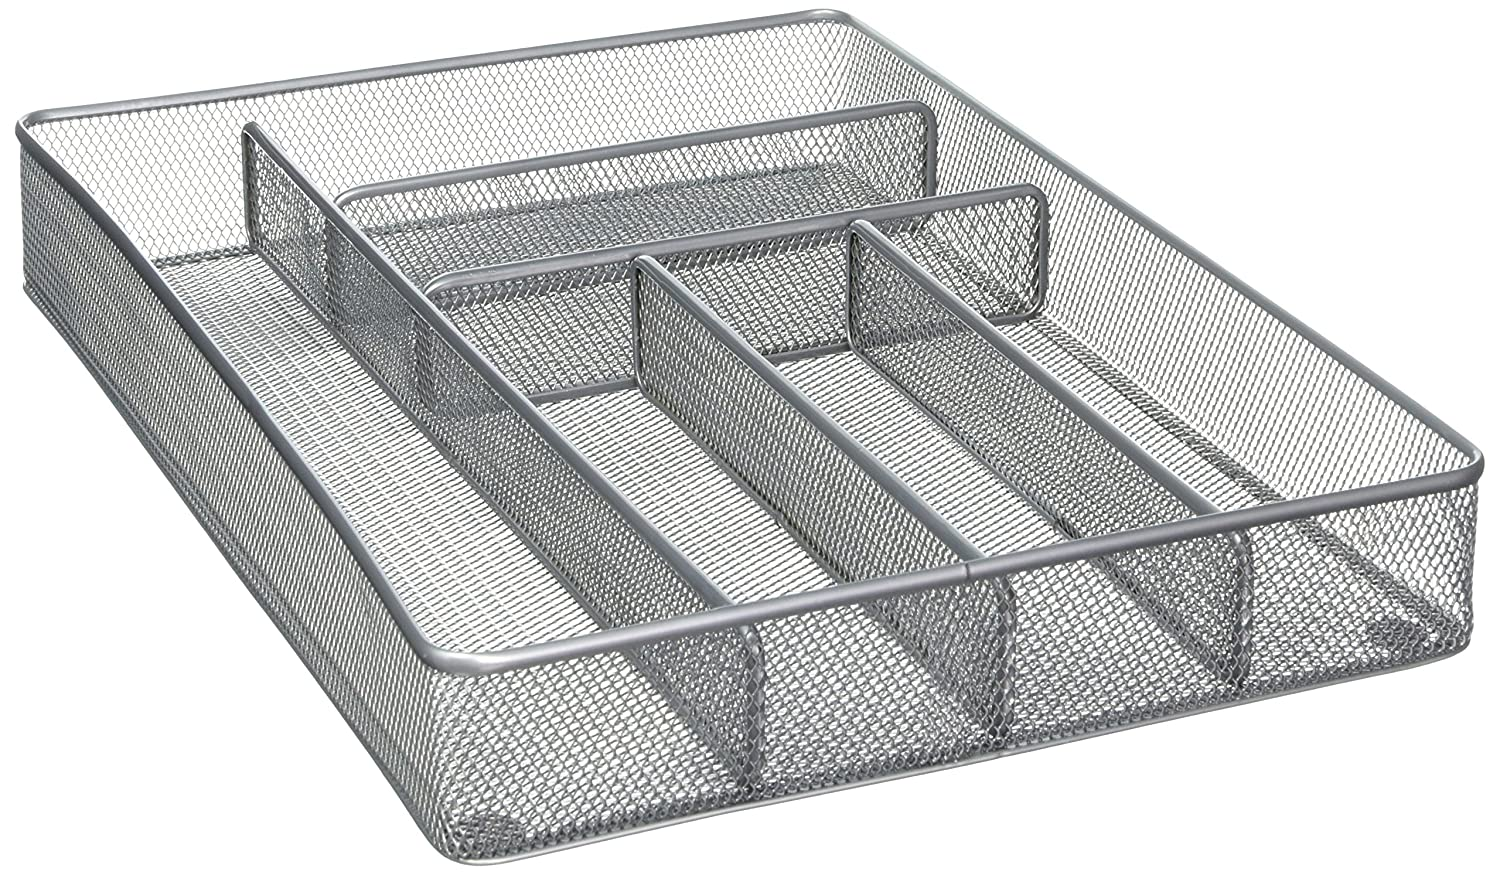 Mesh Silverware Storage with Foam Feet